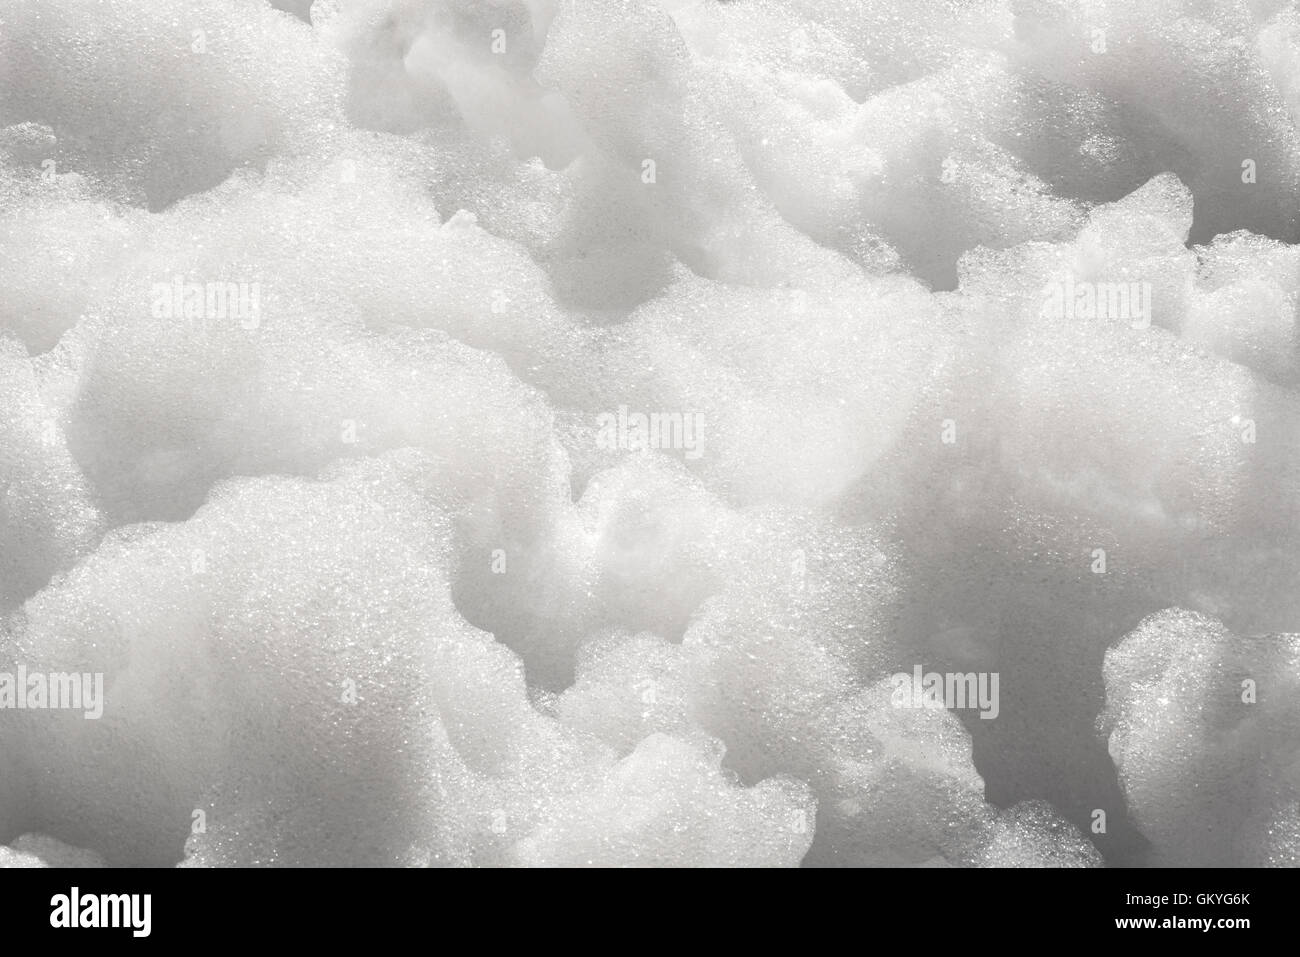 Close up detail of thick white soapy foam bubbles in a full frame background texture - Stock Image